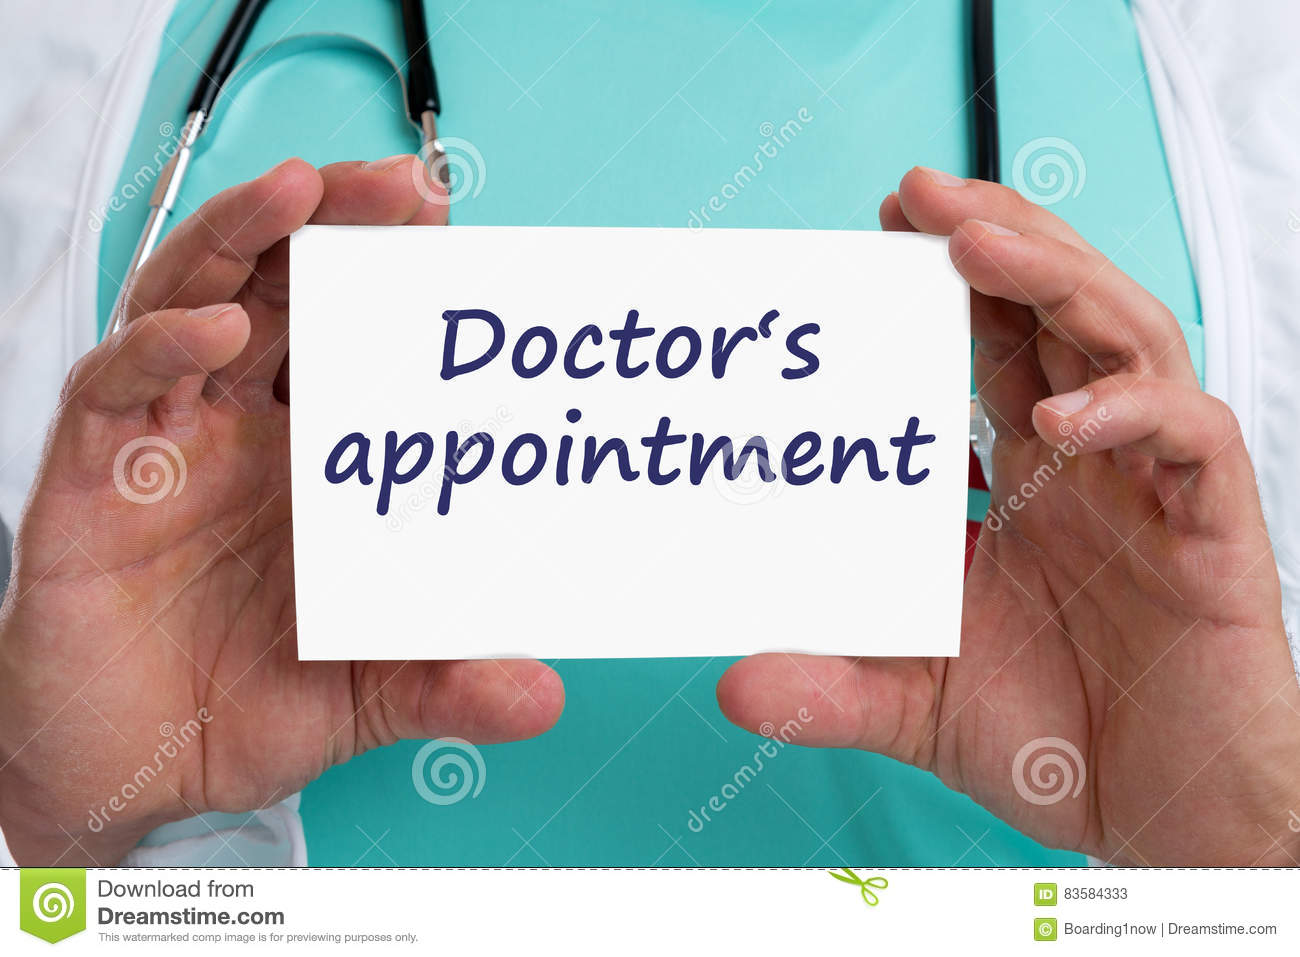 how to make an appointment with doctor for depression